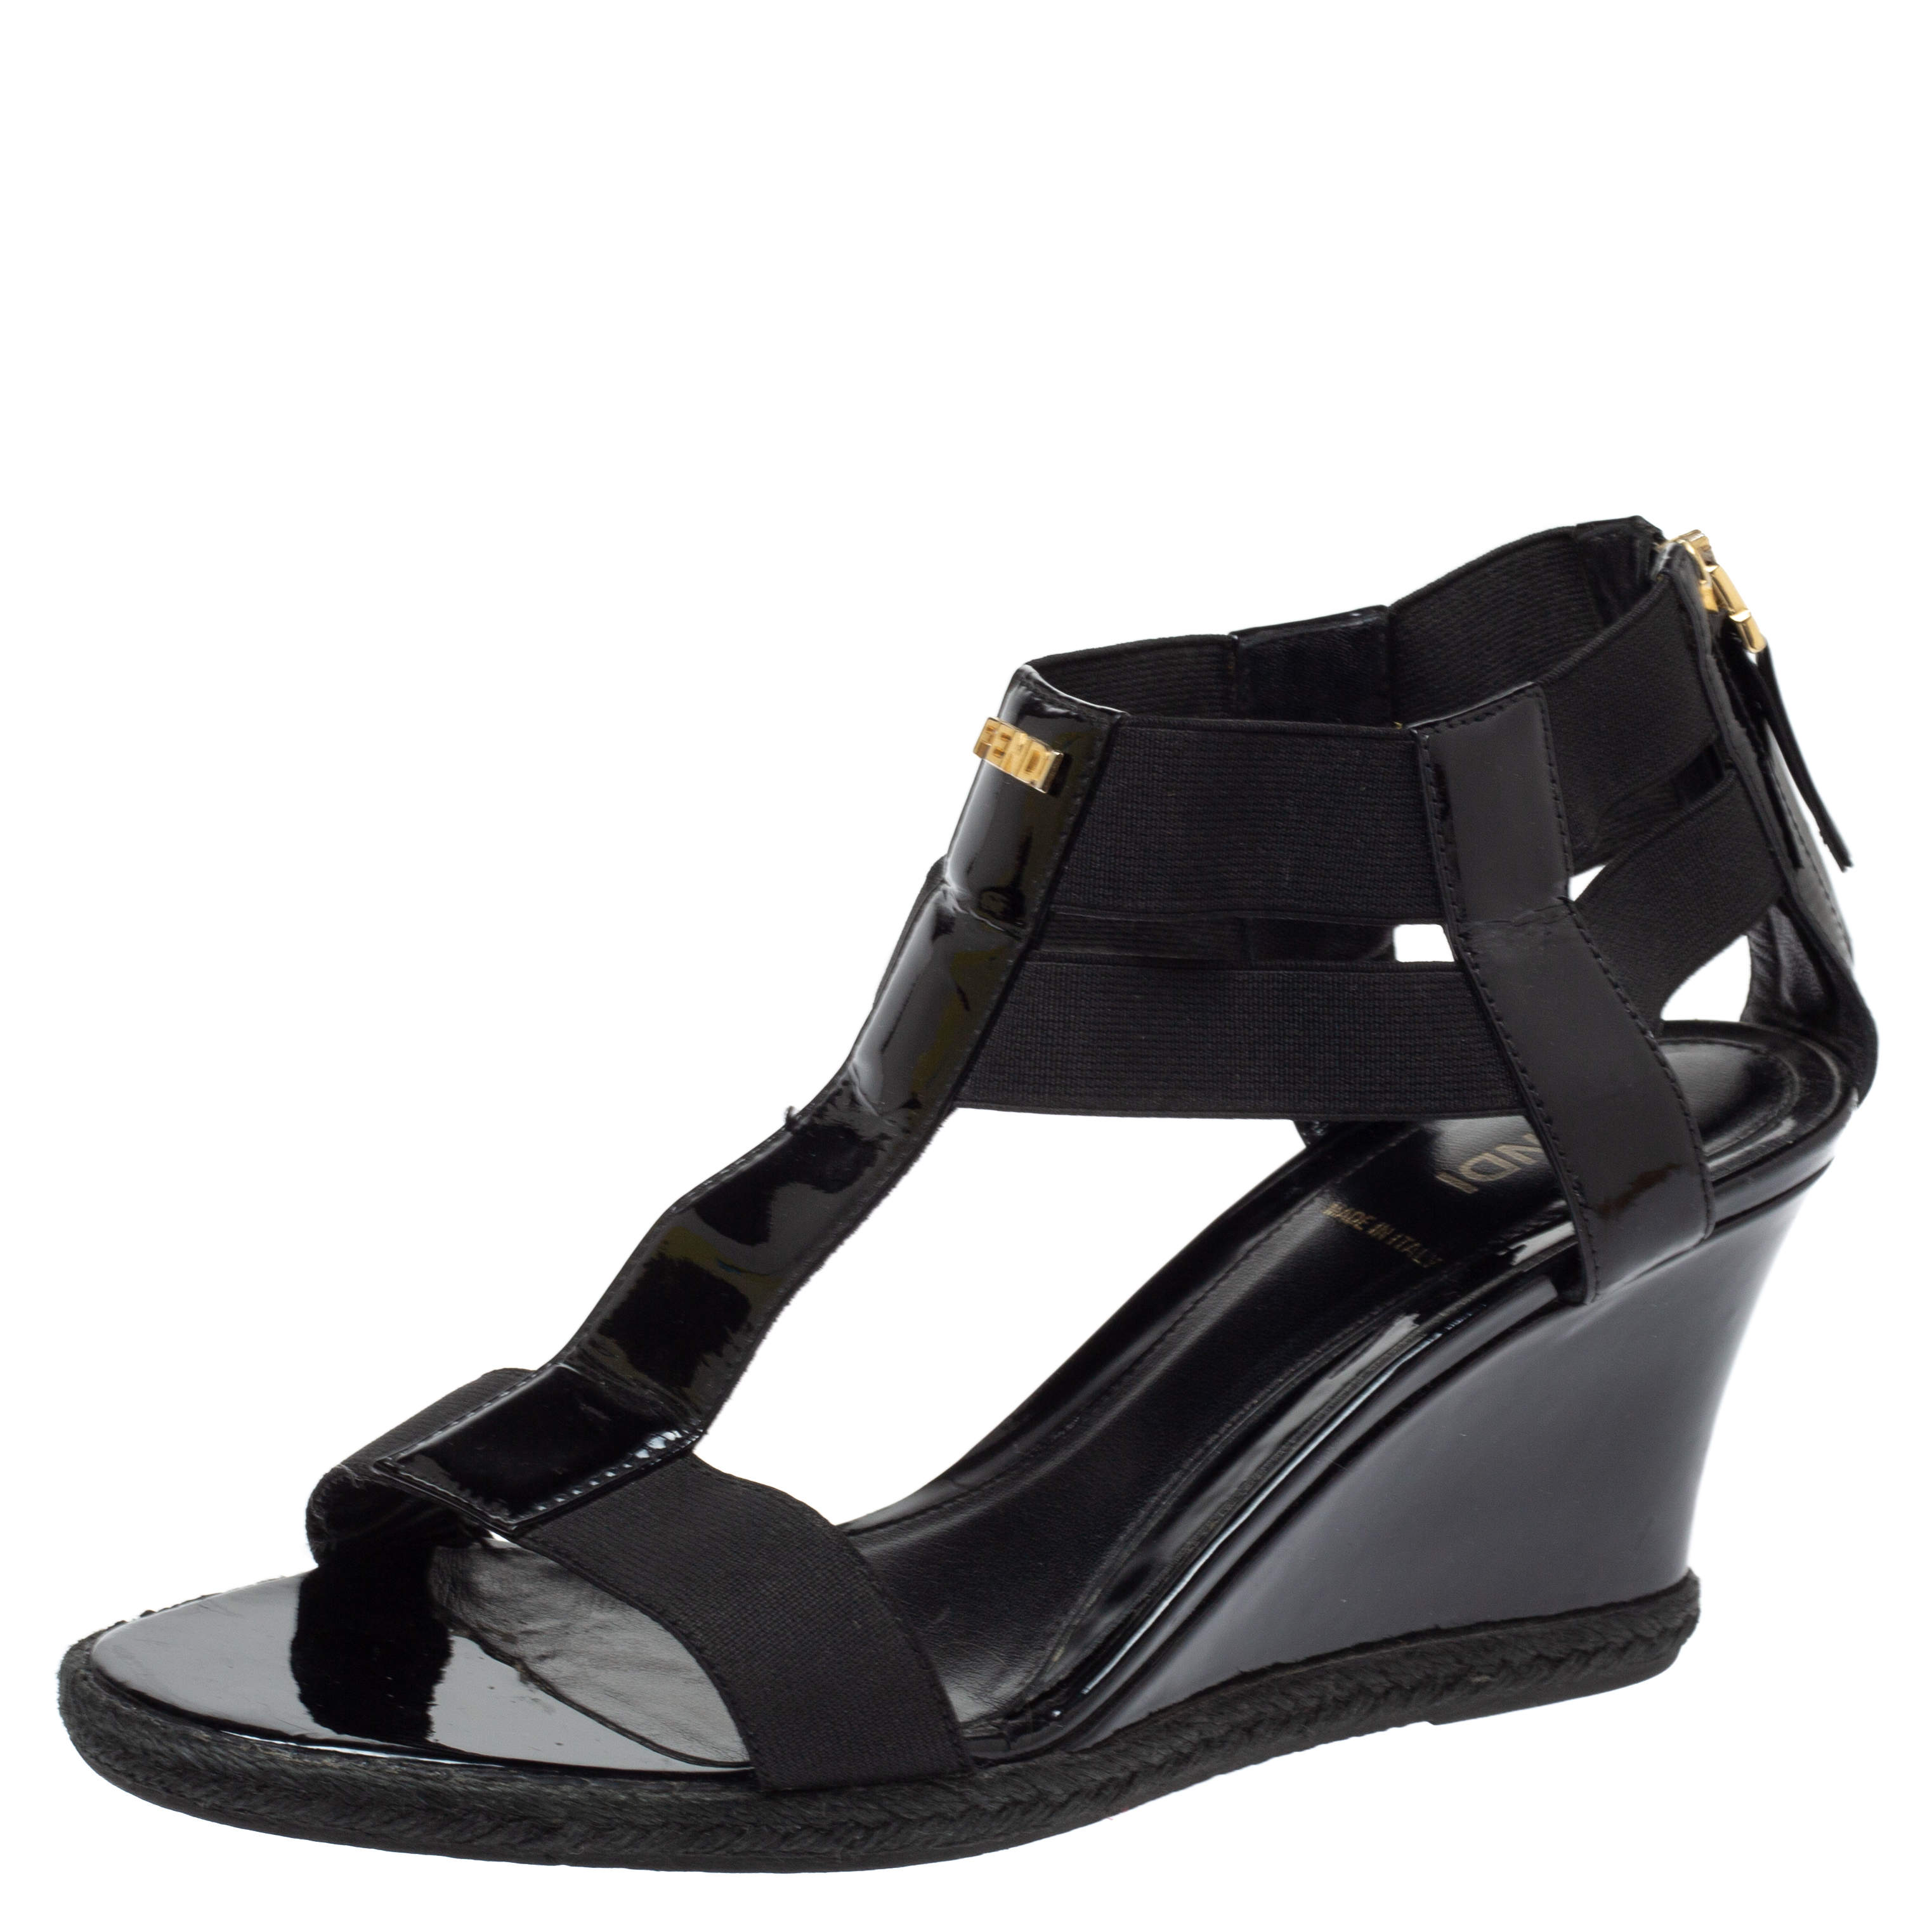 Fendi Black Patent Leather And Elastic Fabric T Strap Espadrille Wedge Sandals Size 39